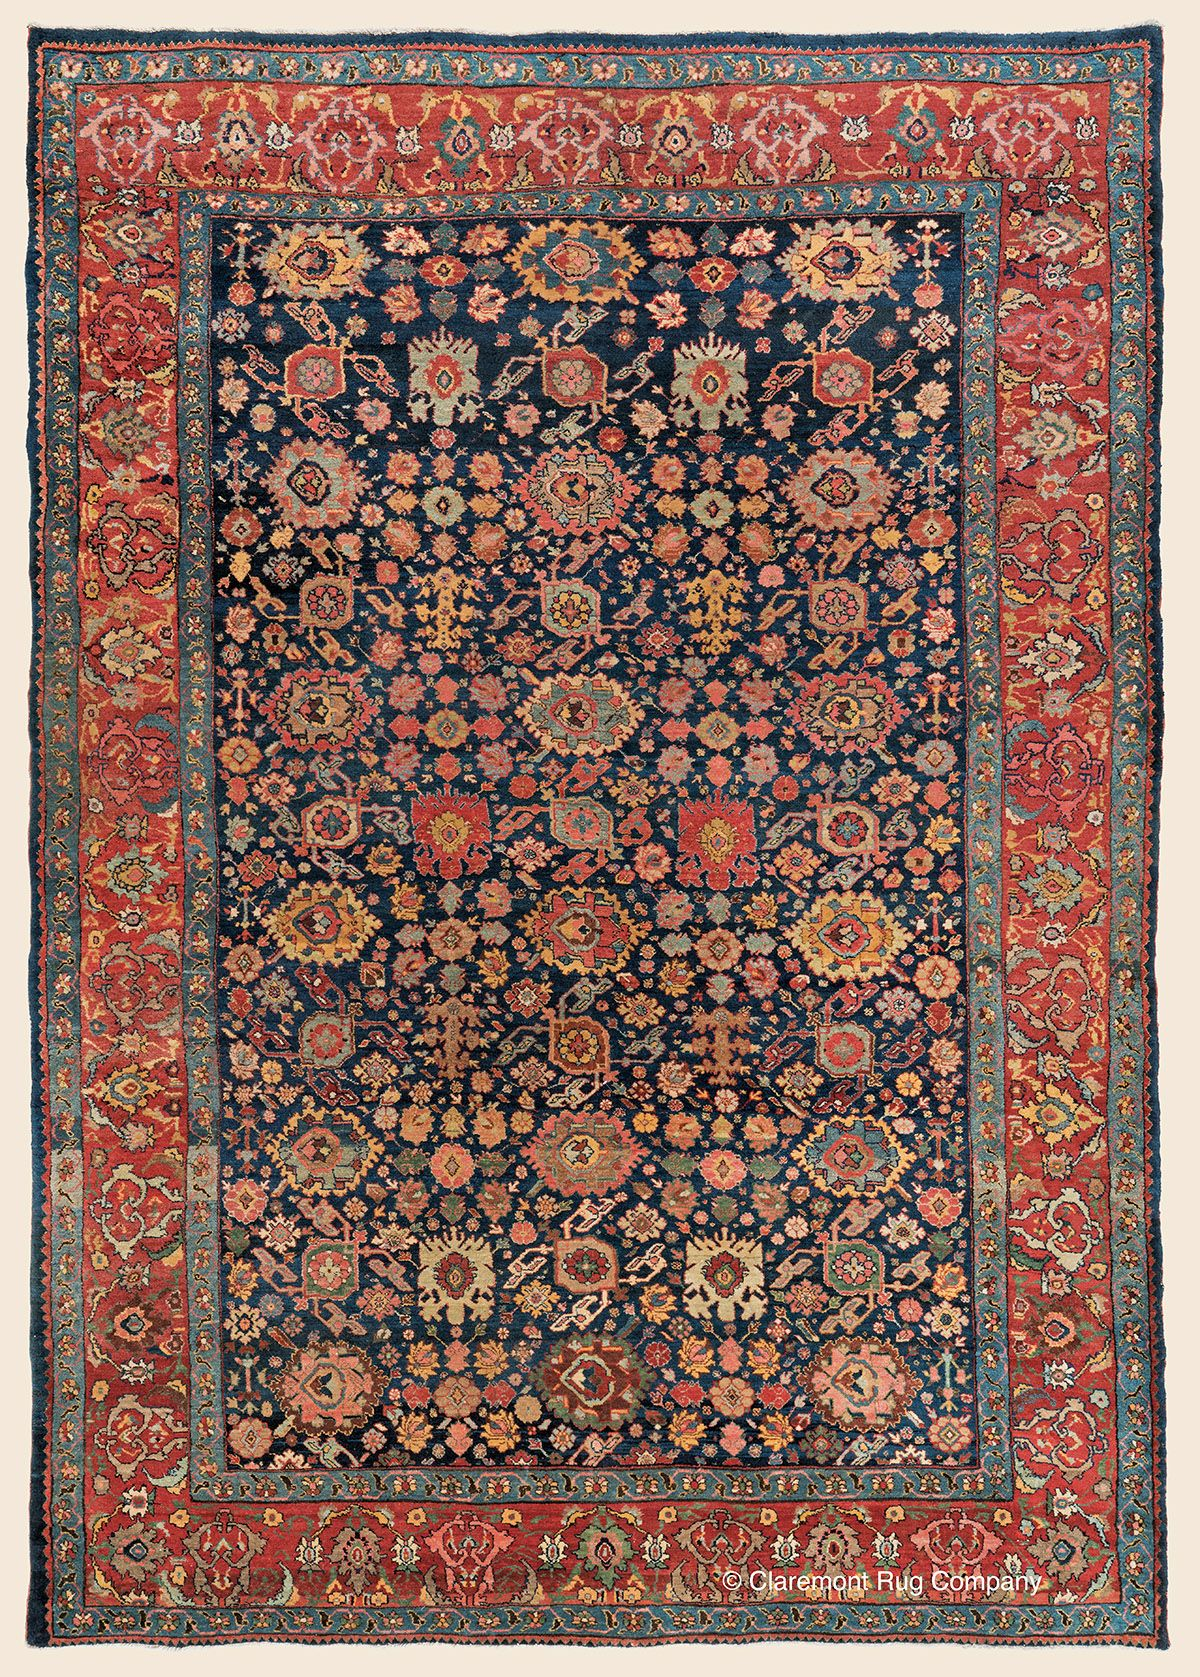 Bijar 7 8 X 10 9 Circa 1900 Northwest Persian Antique Rug Claremont Rug Company Click To Learn More About Th Claremont Rug Company Rugs Rugs On Carpet